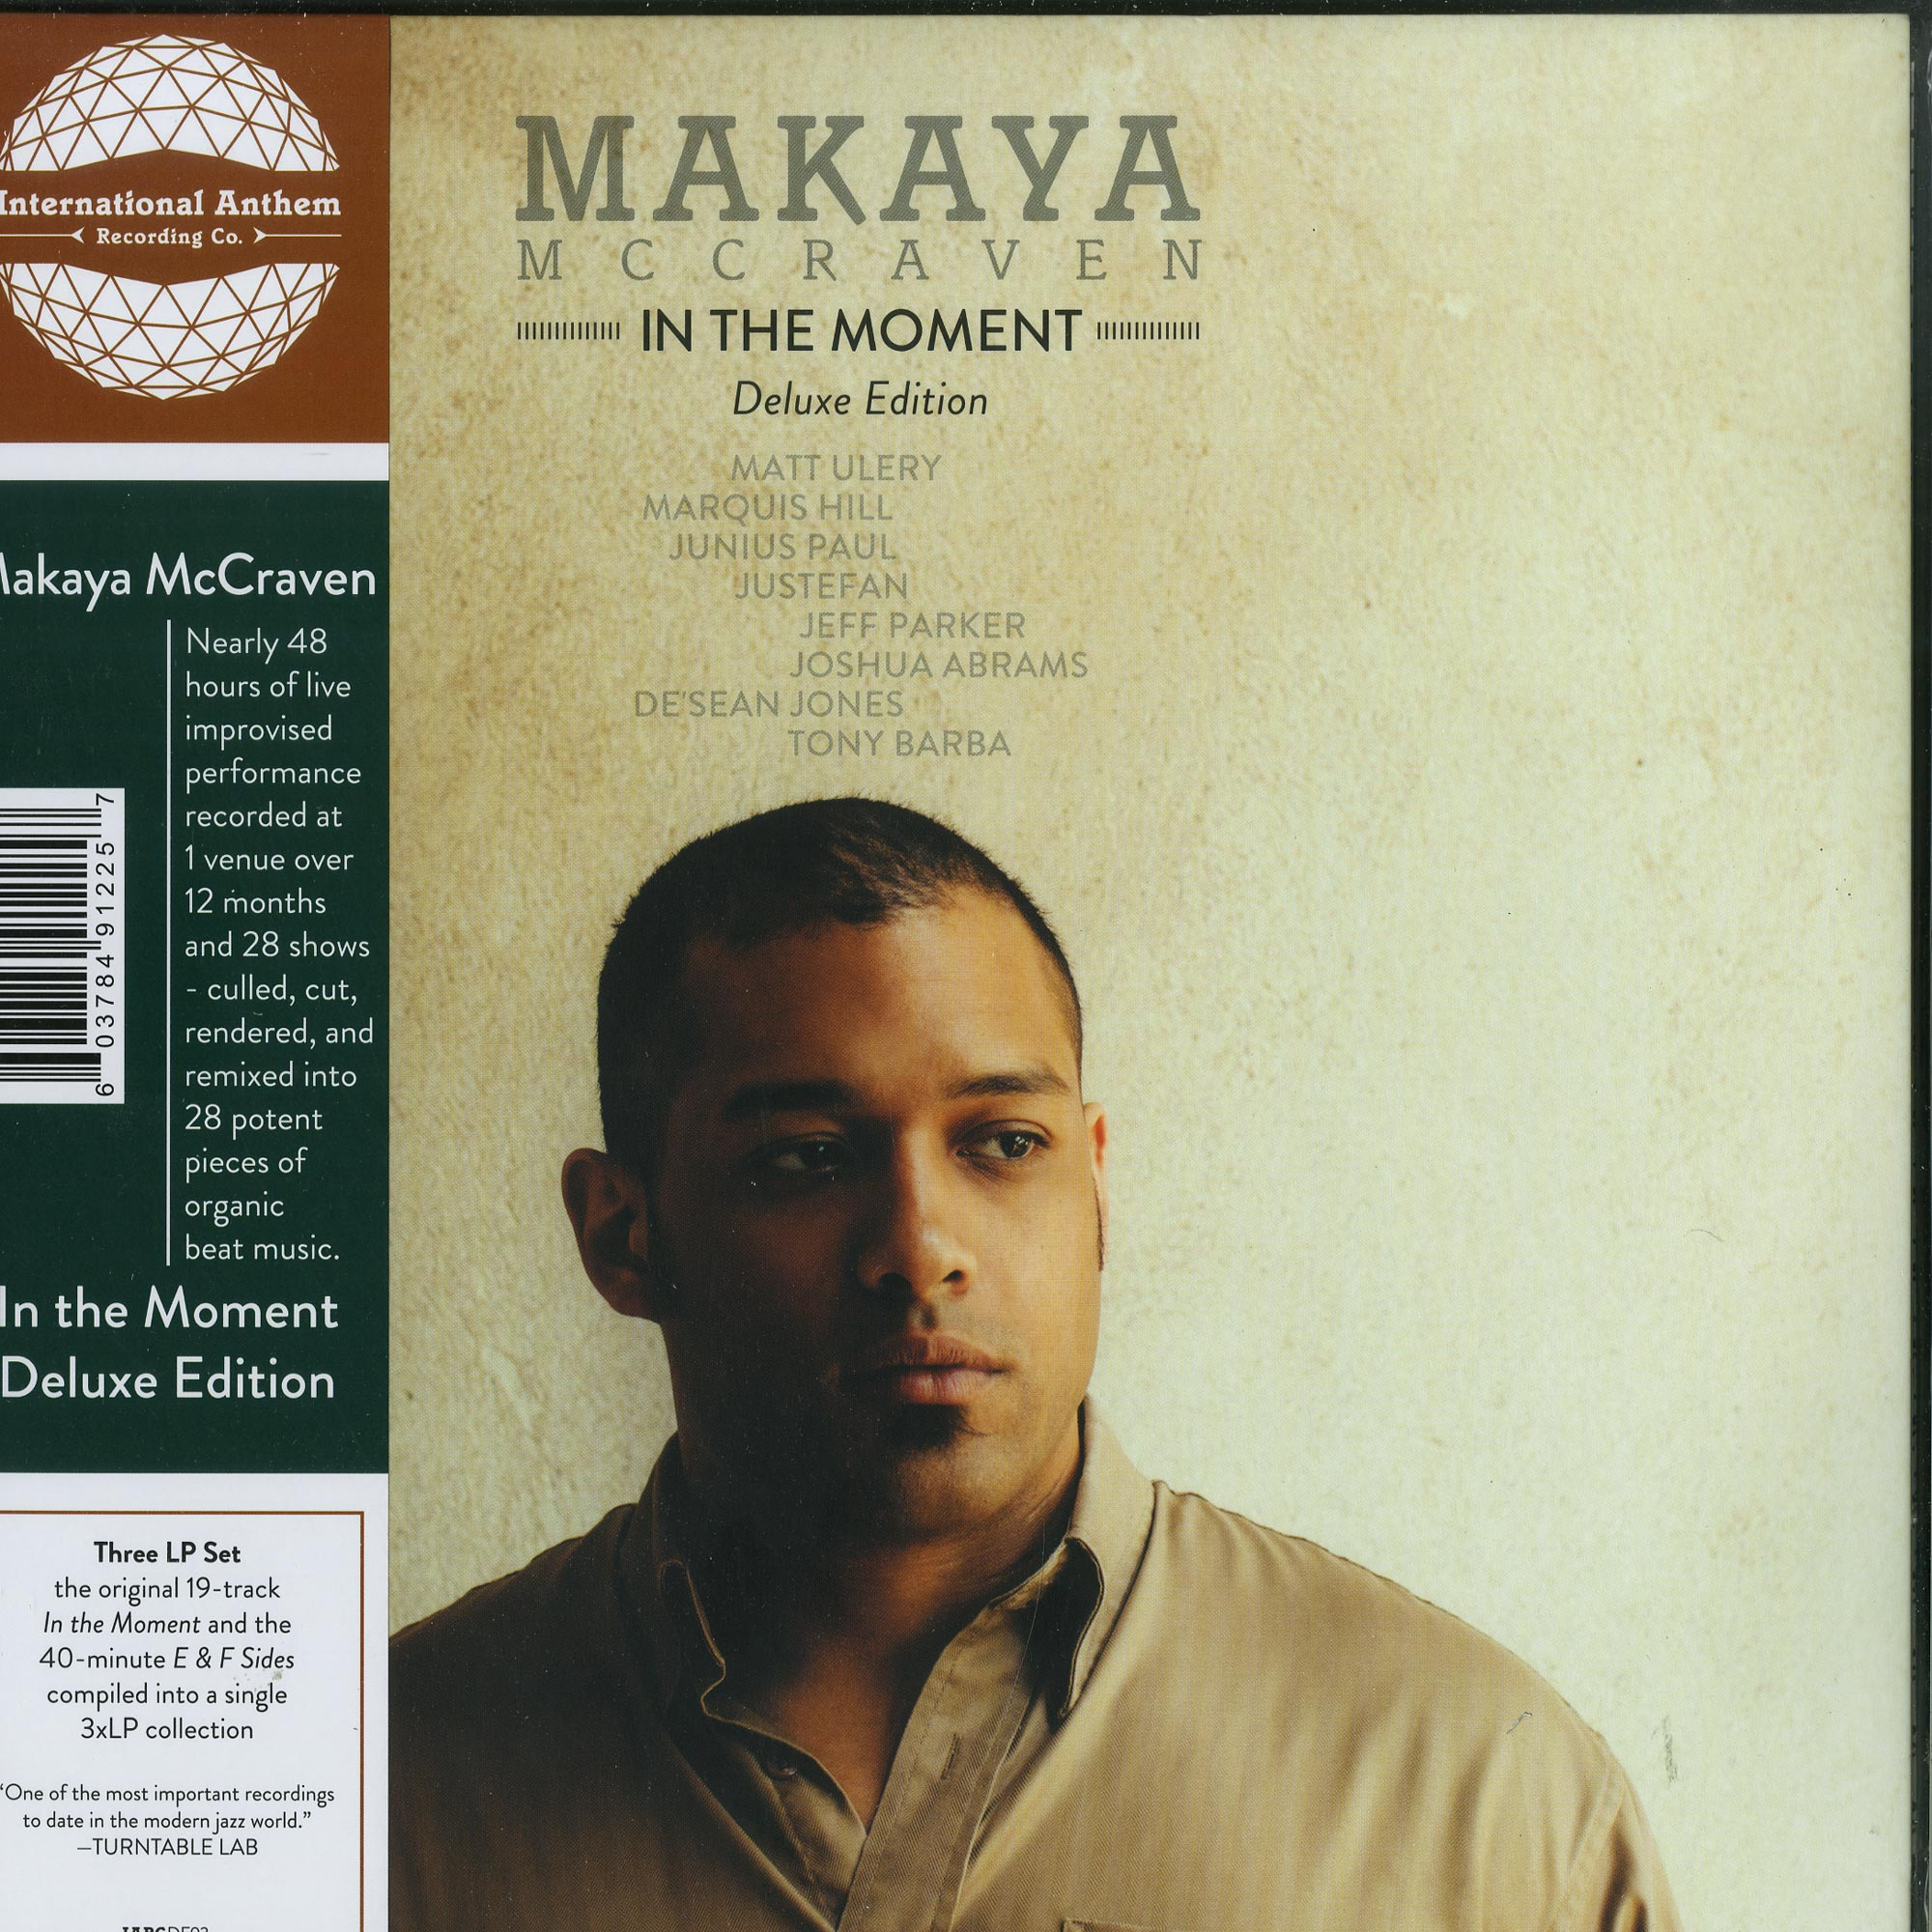 Makaya McCraven - IN THE MOMENT